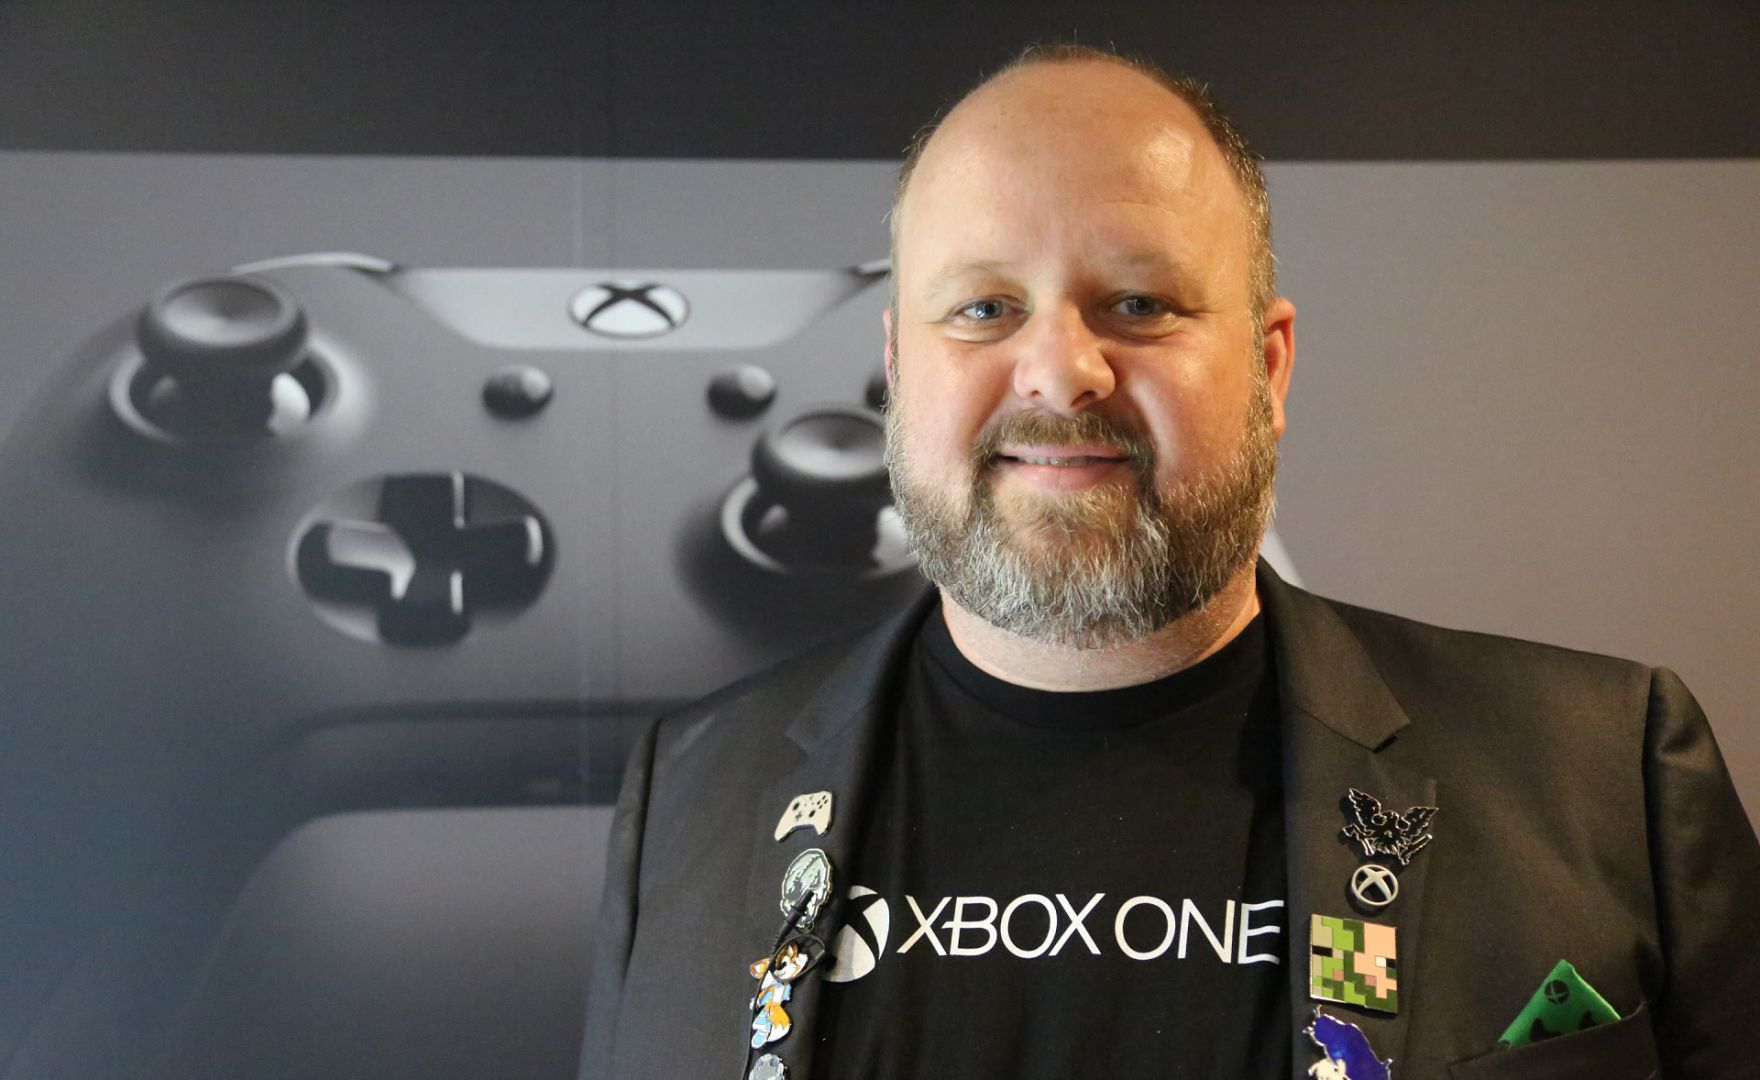 Aaron Greenberg Xbox One X